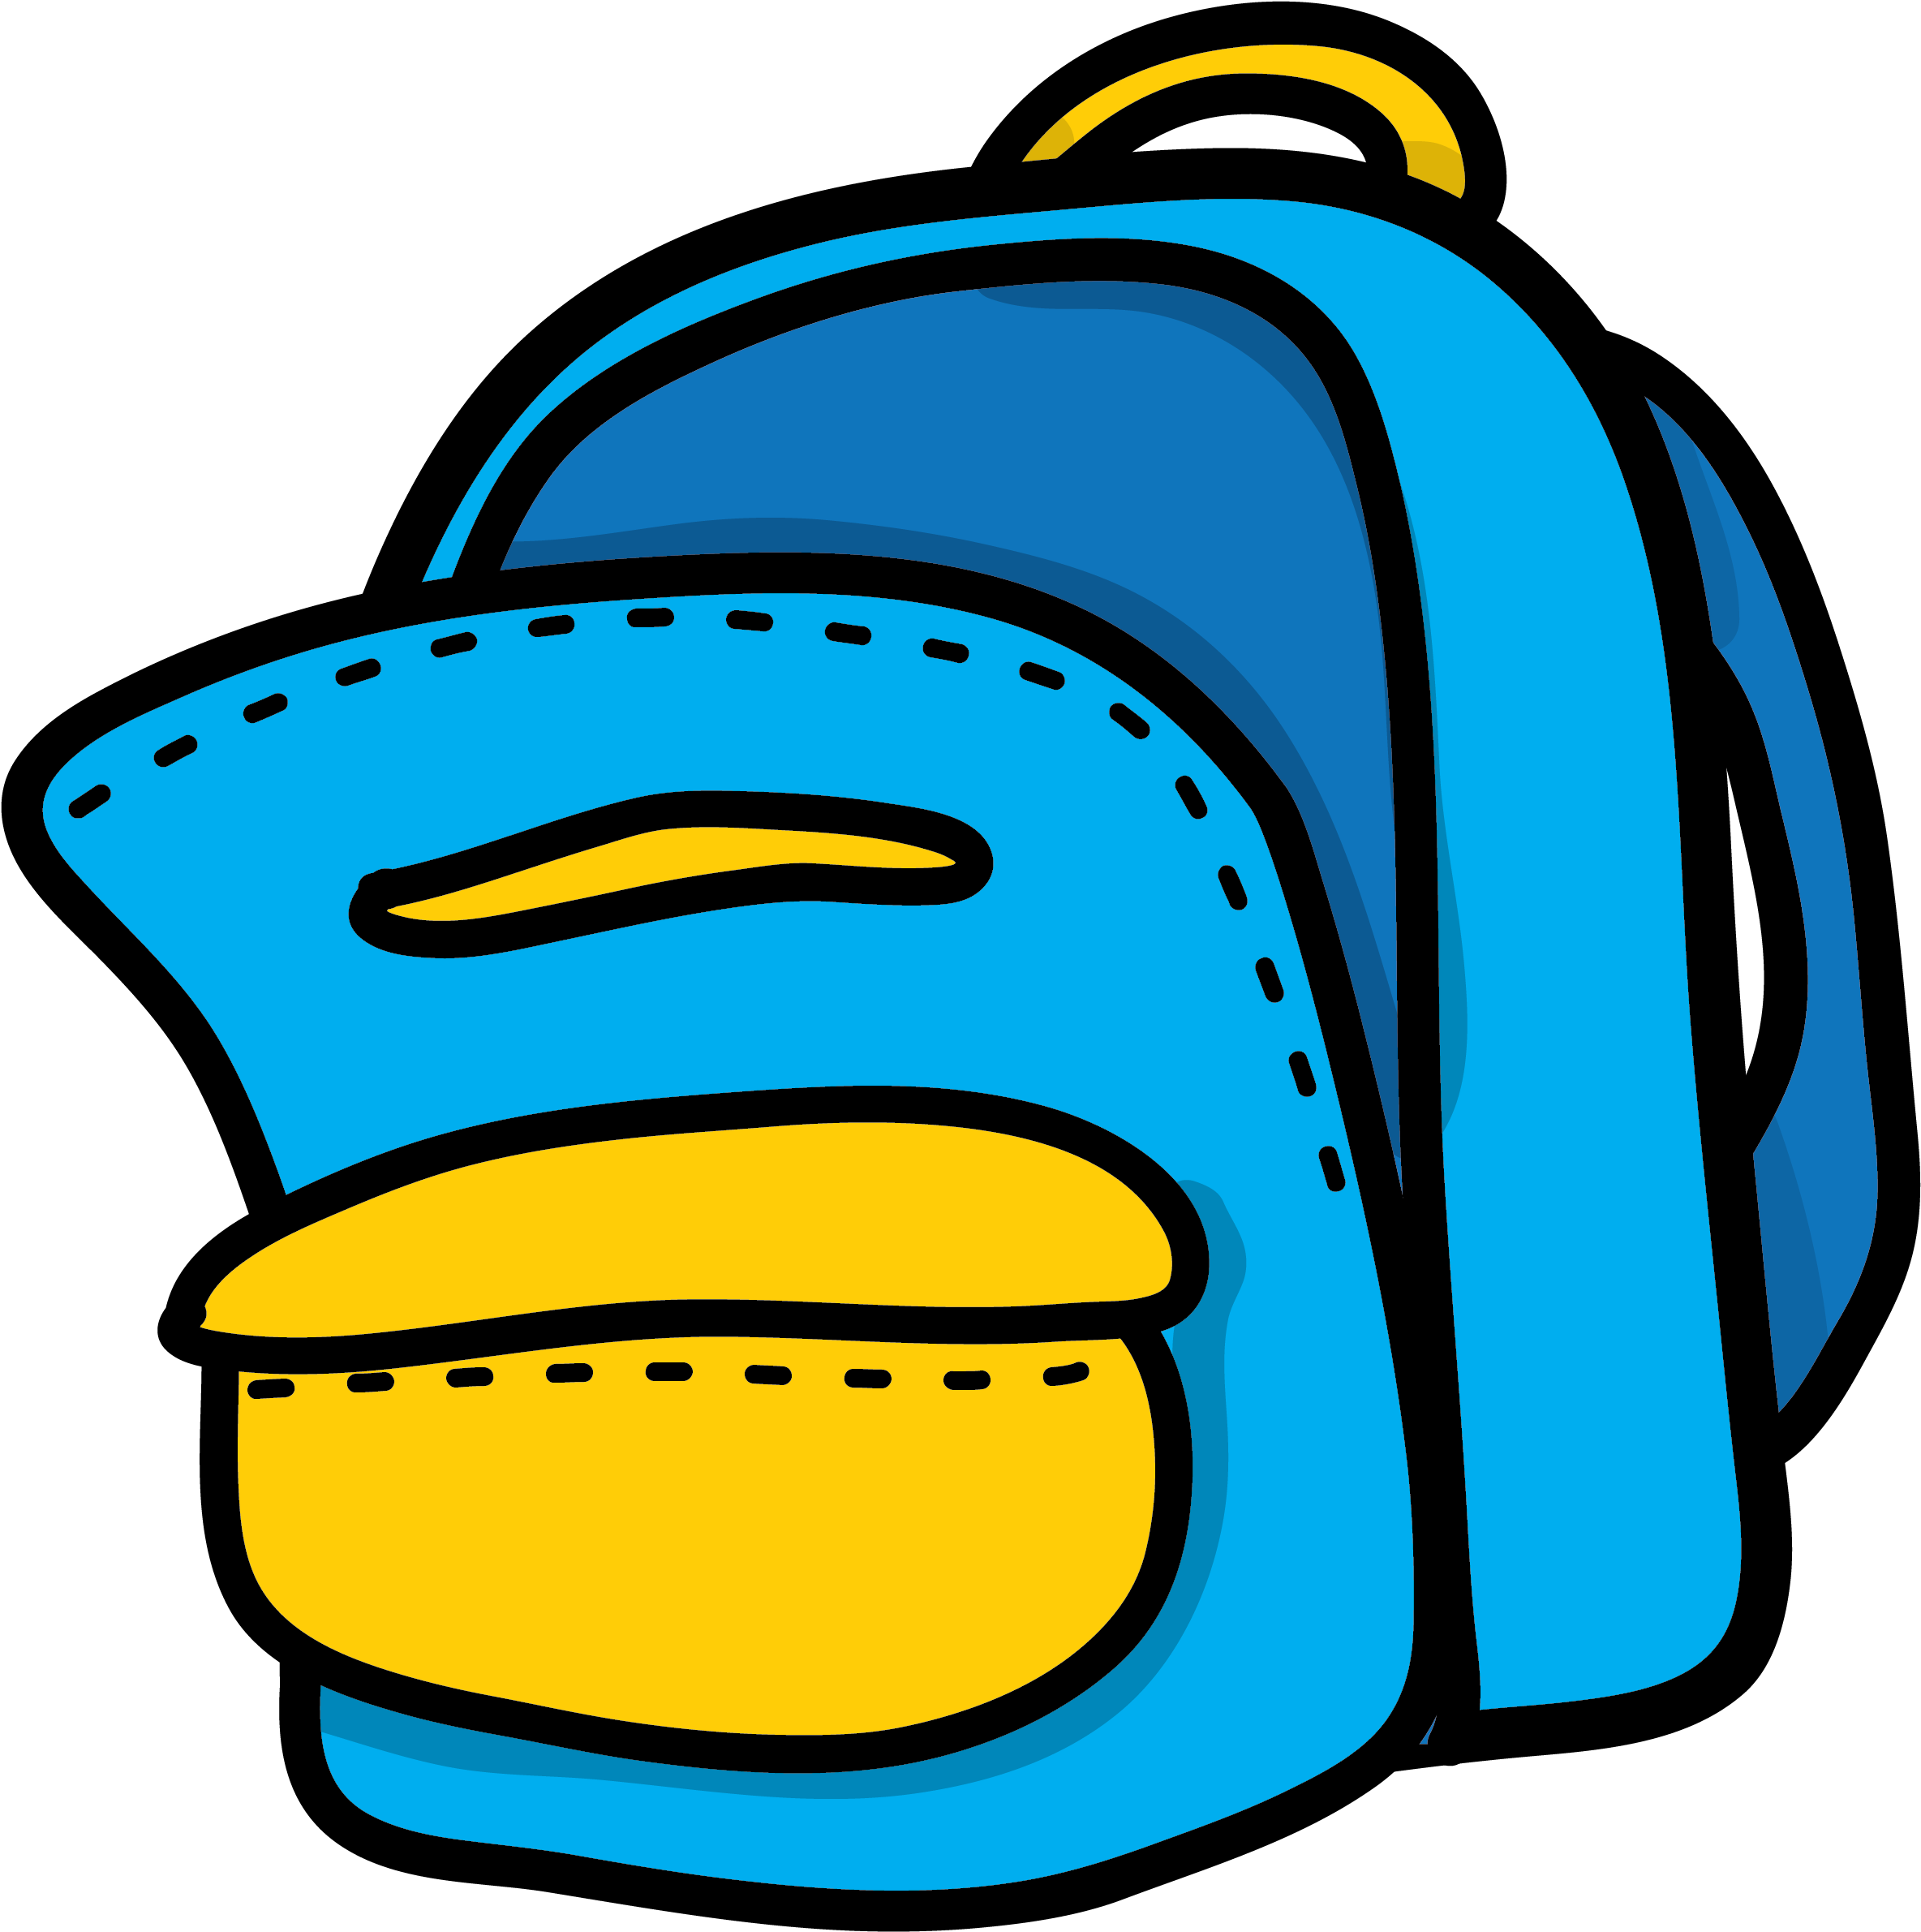 download blue & yellow backpack clipart - blue backpack clip art - full  size png image - pngkit  pngkit